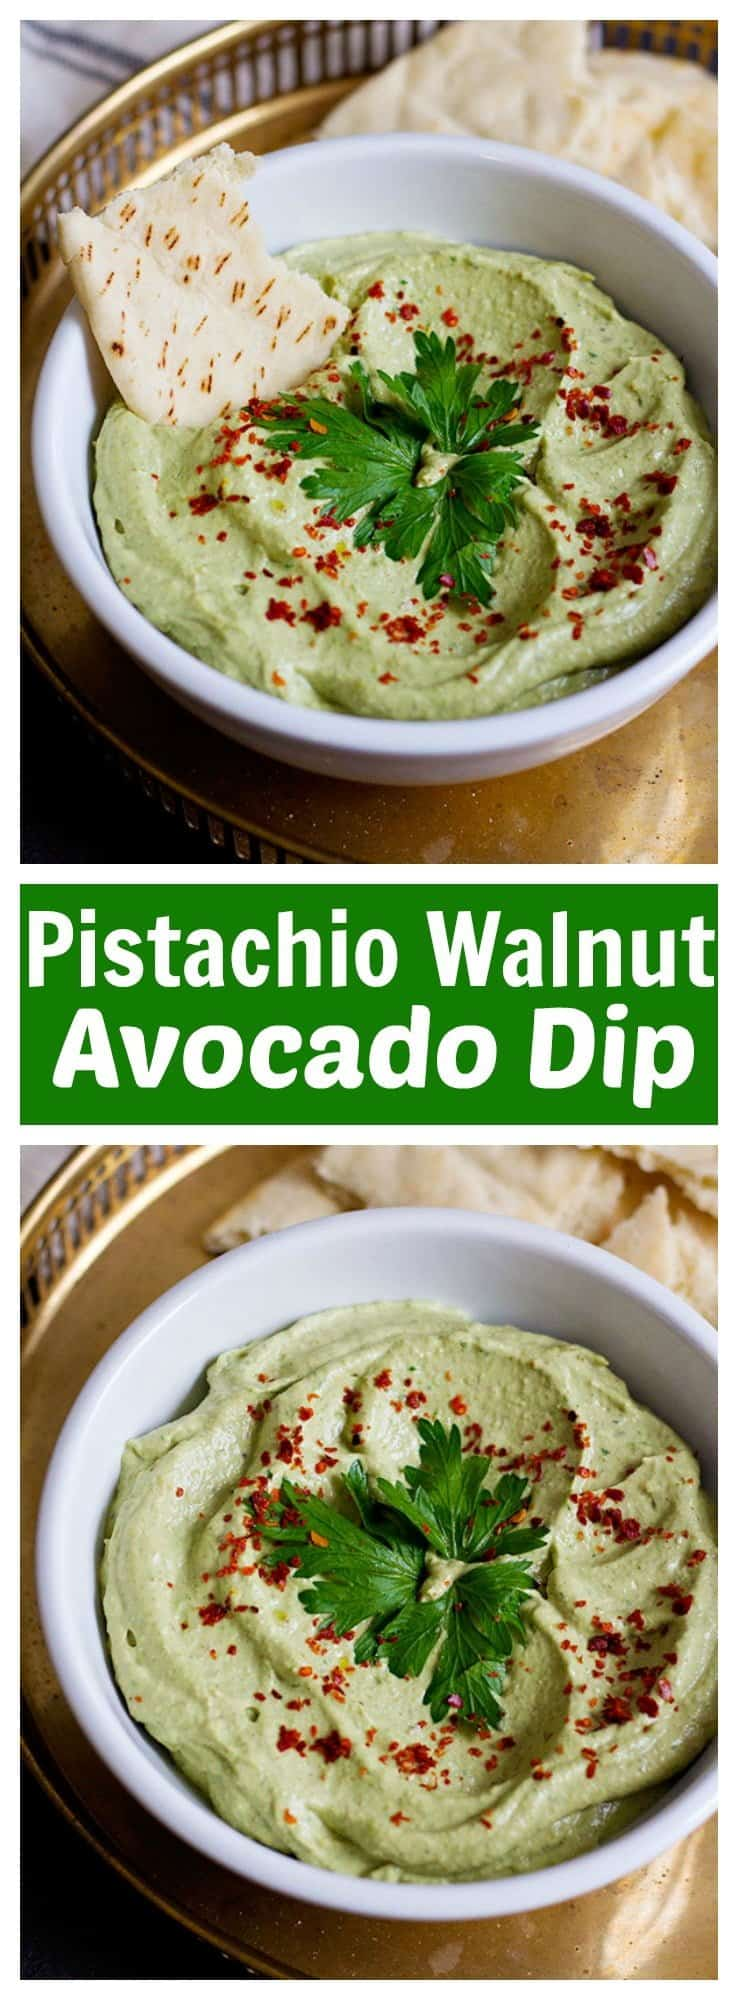 Pistachio Walnut Avocado Dip is perfect for gatherings, or just as an afternoon snack. It's packed with nuts and nutrients. Amazingly delicious!